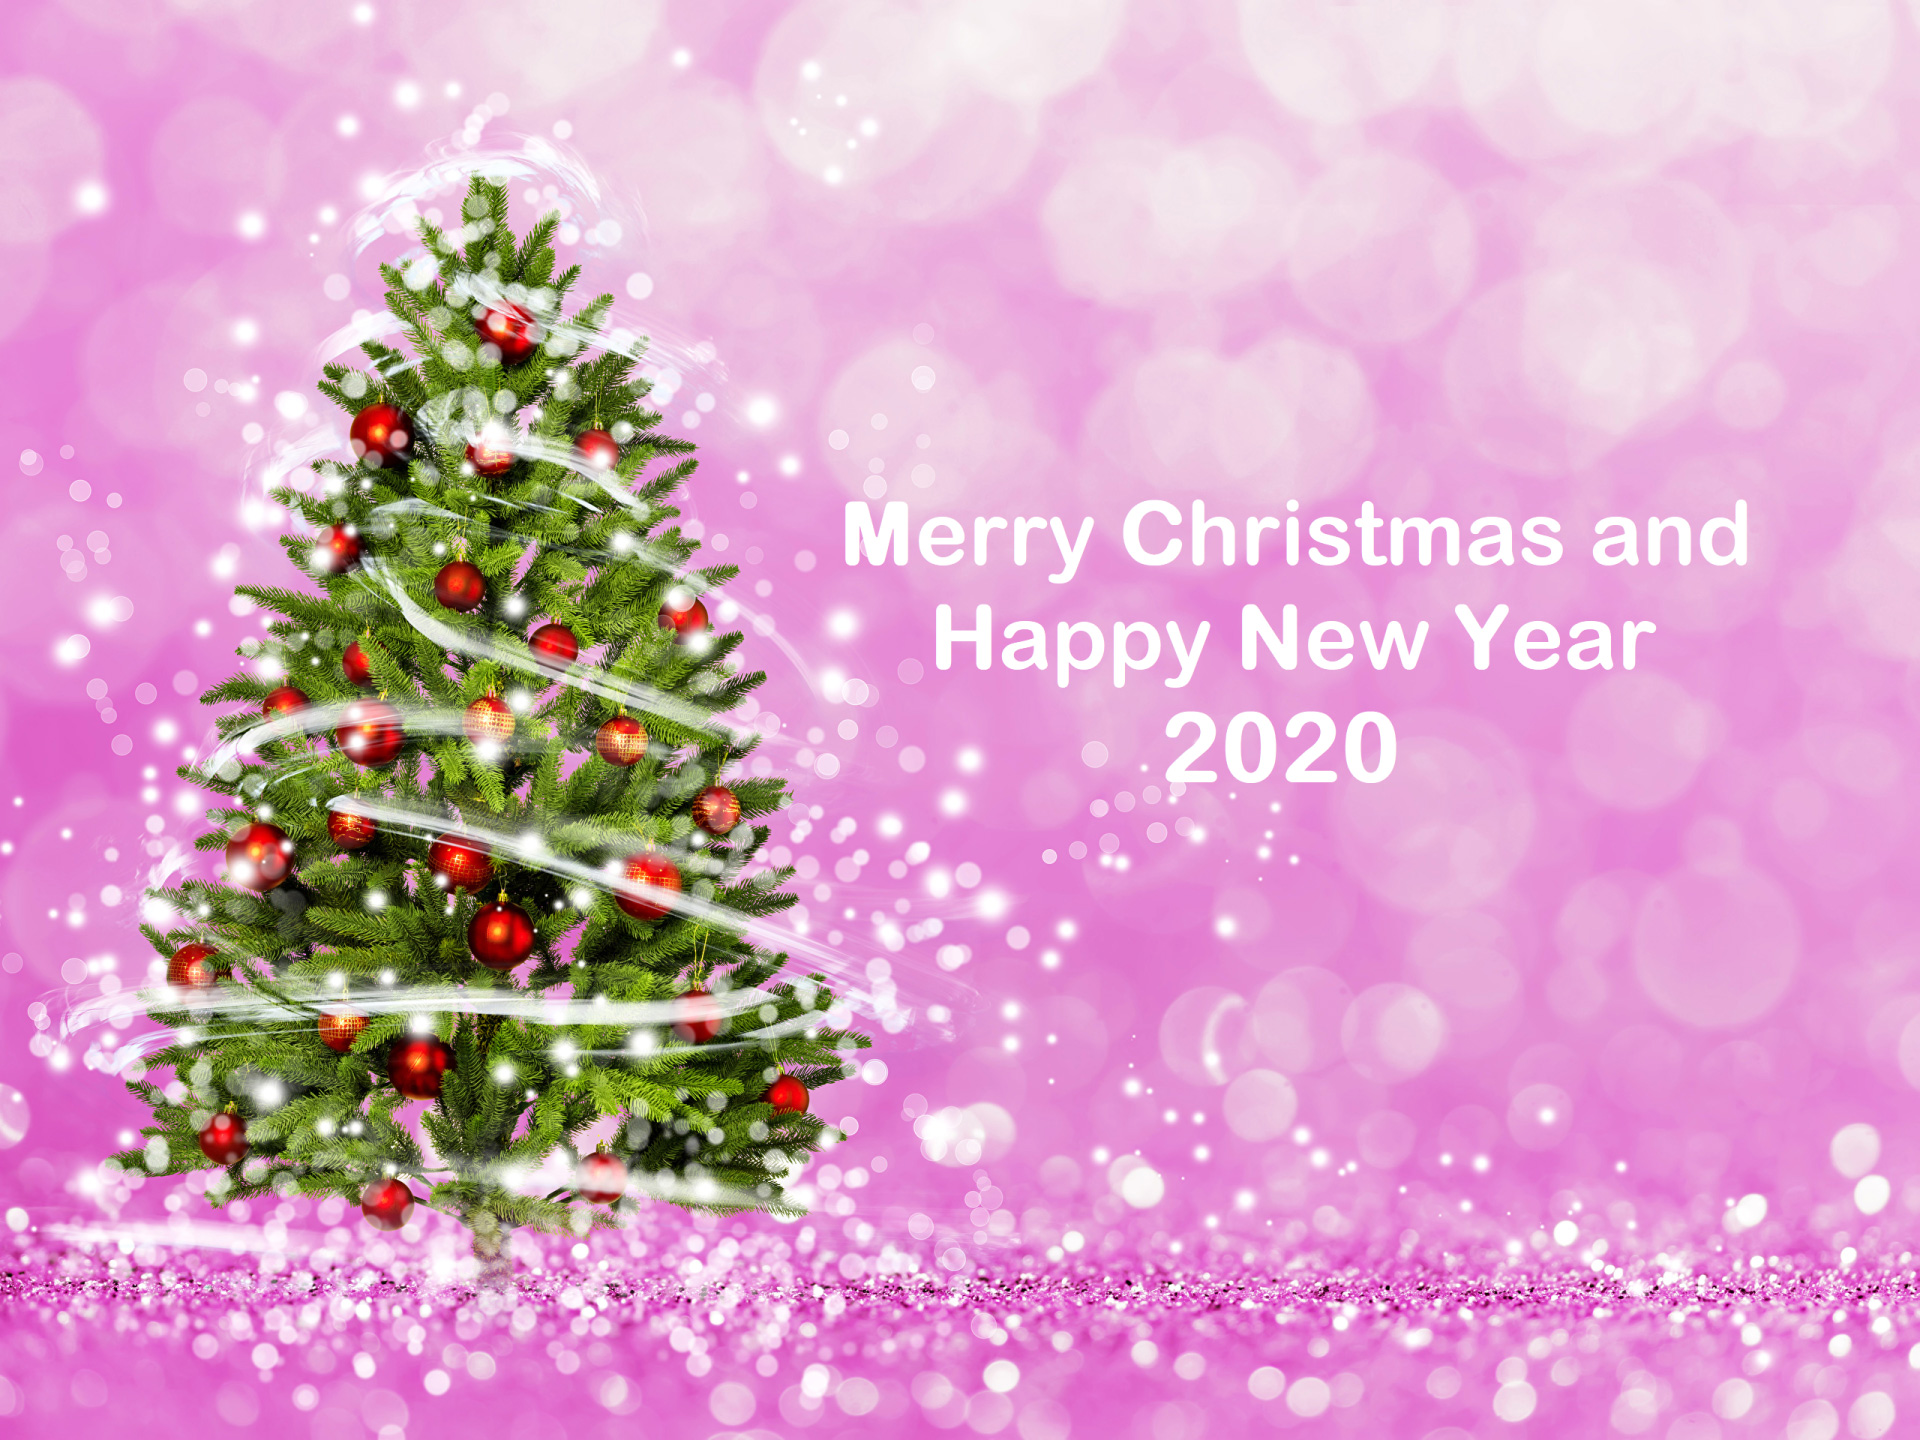 Photo Merry Christmas and Happy New Year 2020 number 1